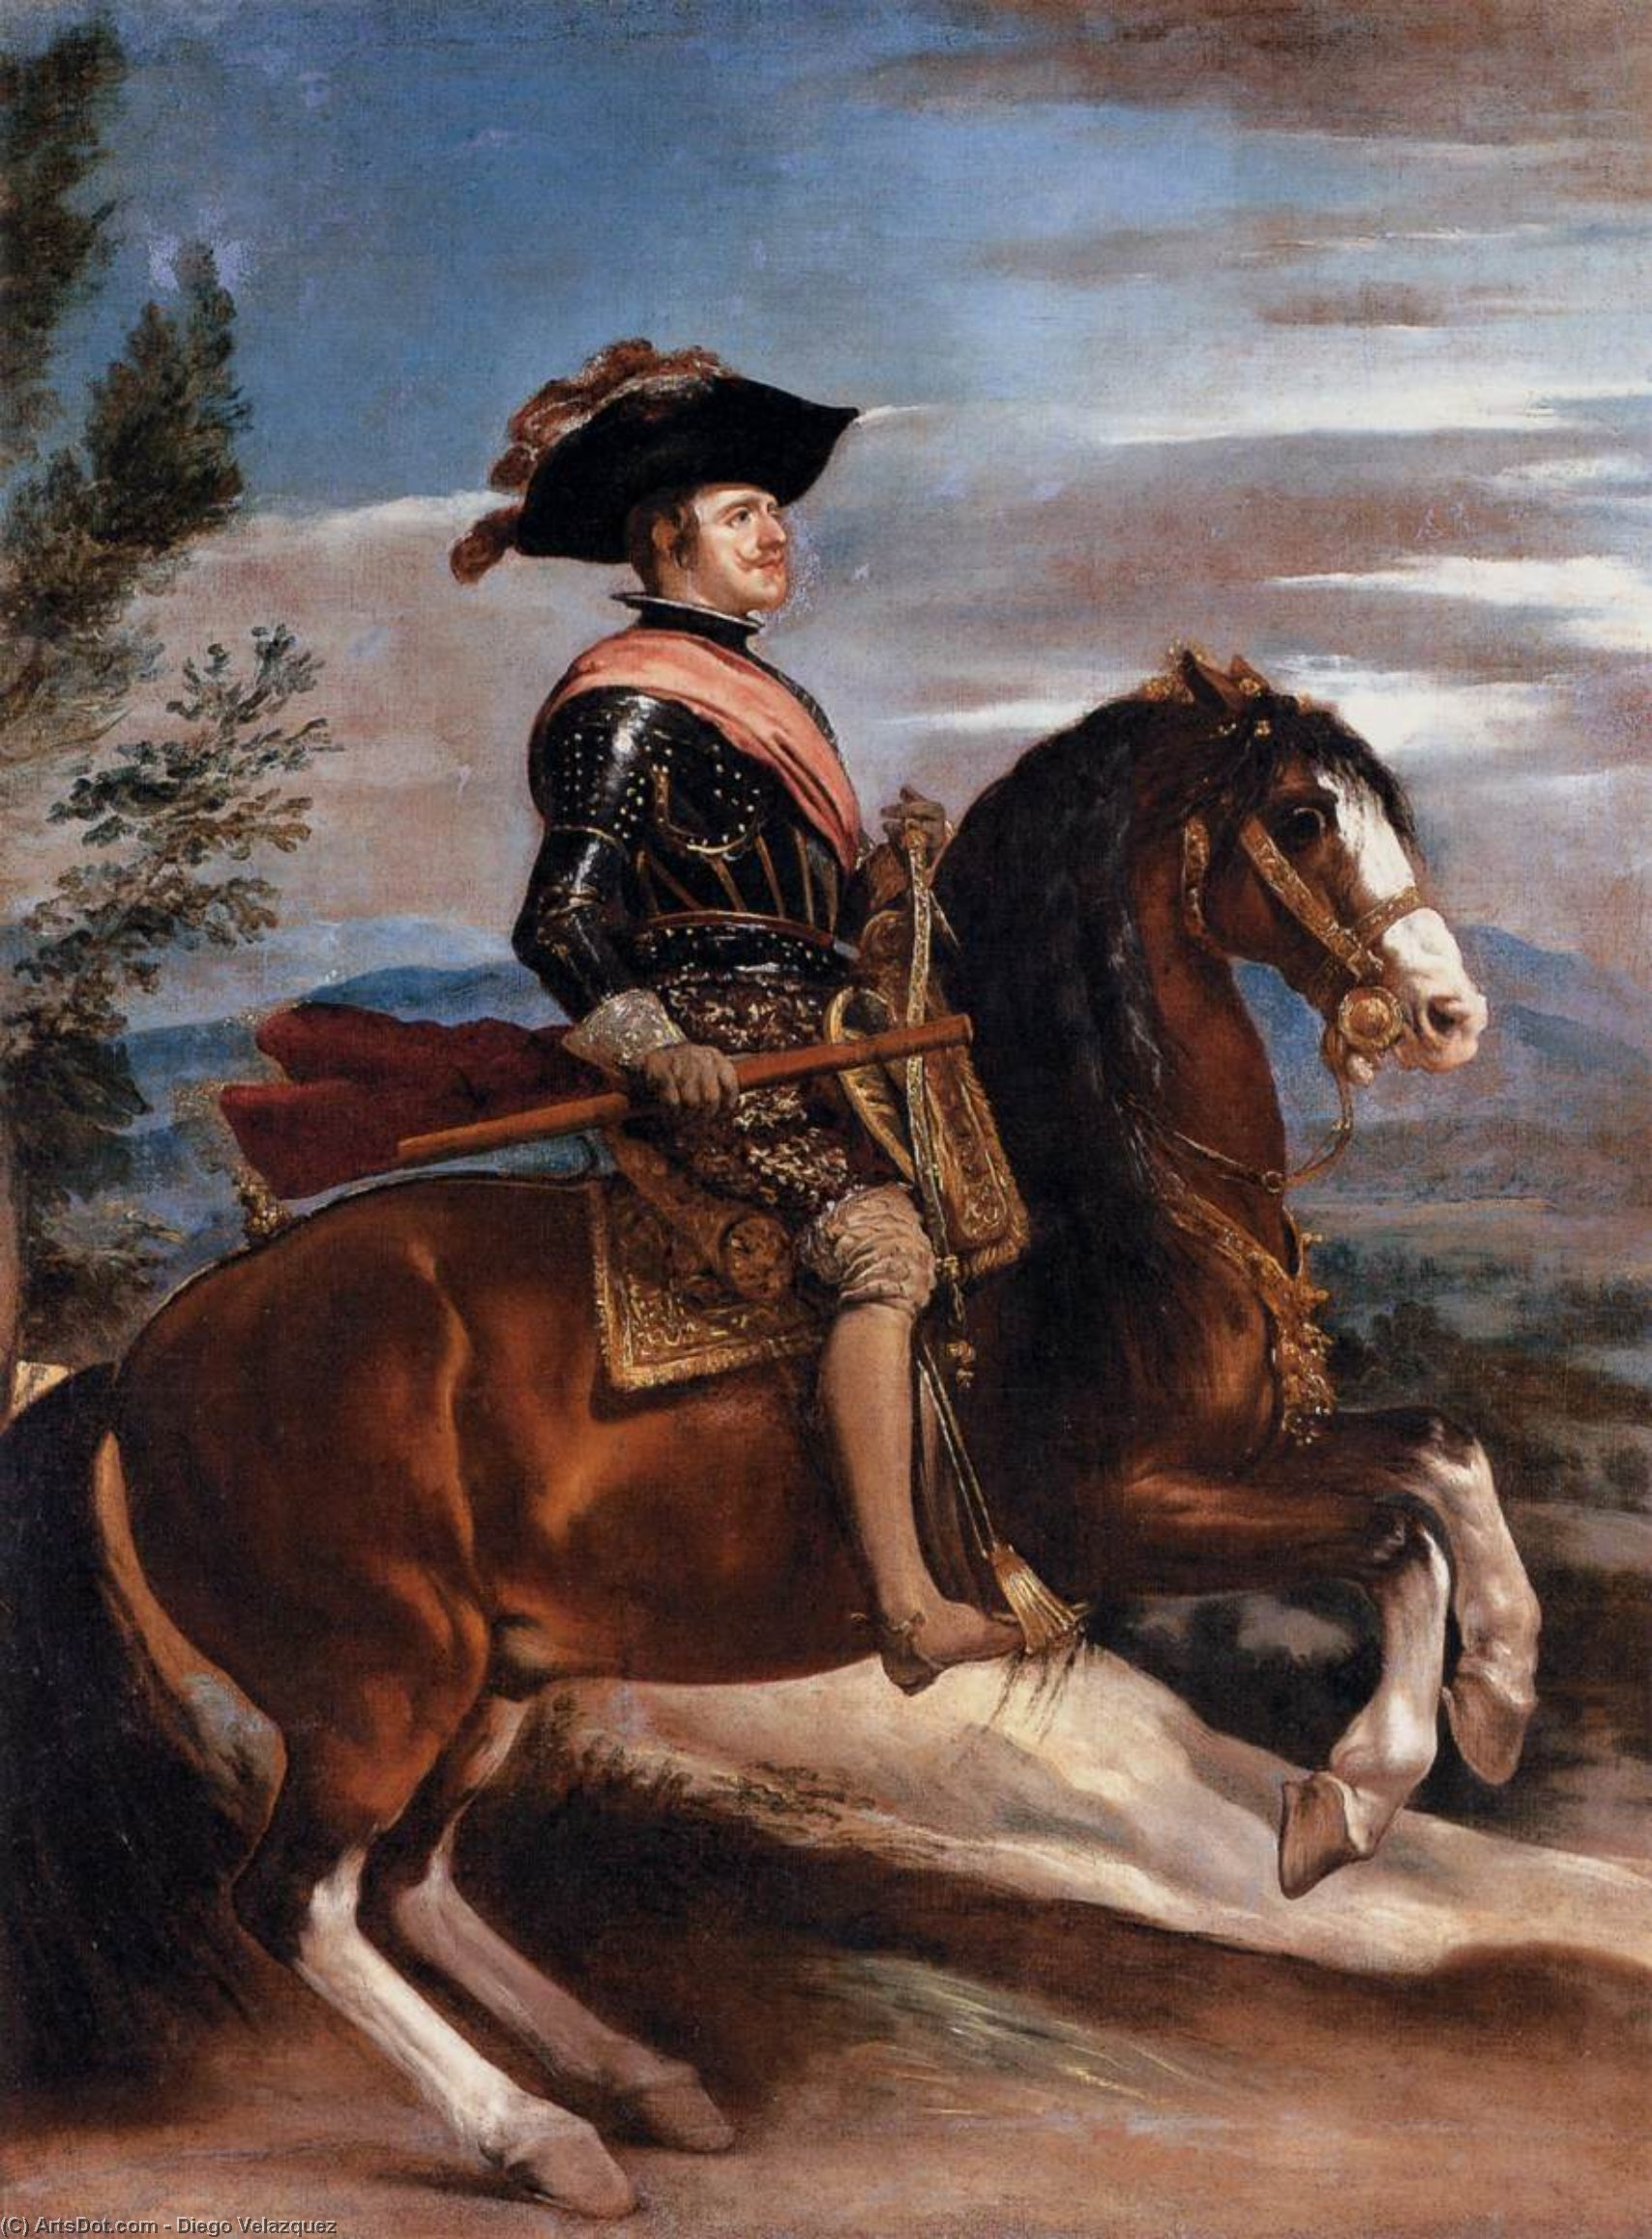 Portrait of Philip IV of Spain on Horseback, Oil On Canvas by Diego Velazquez (1599-1660, Spain)